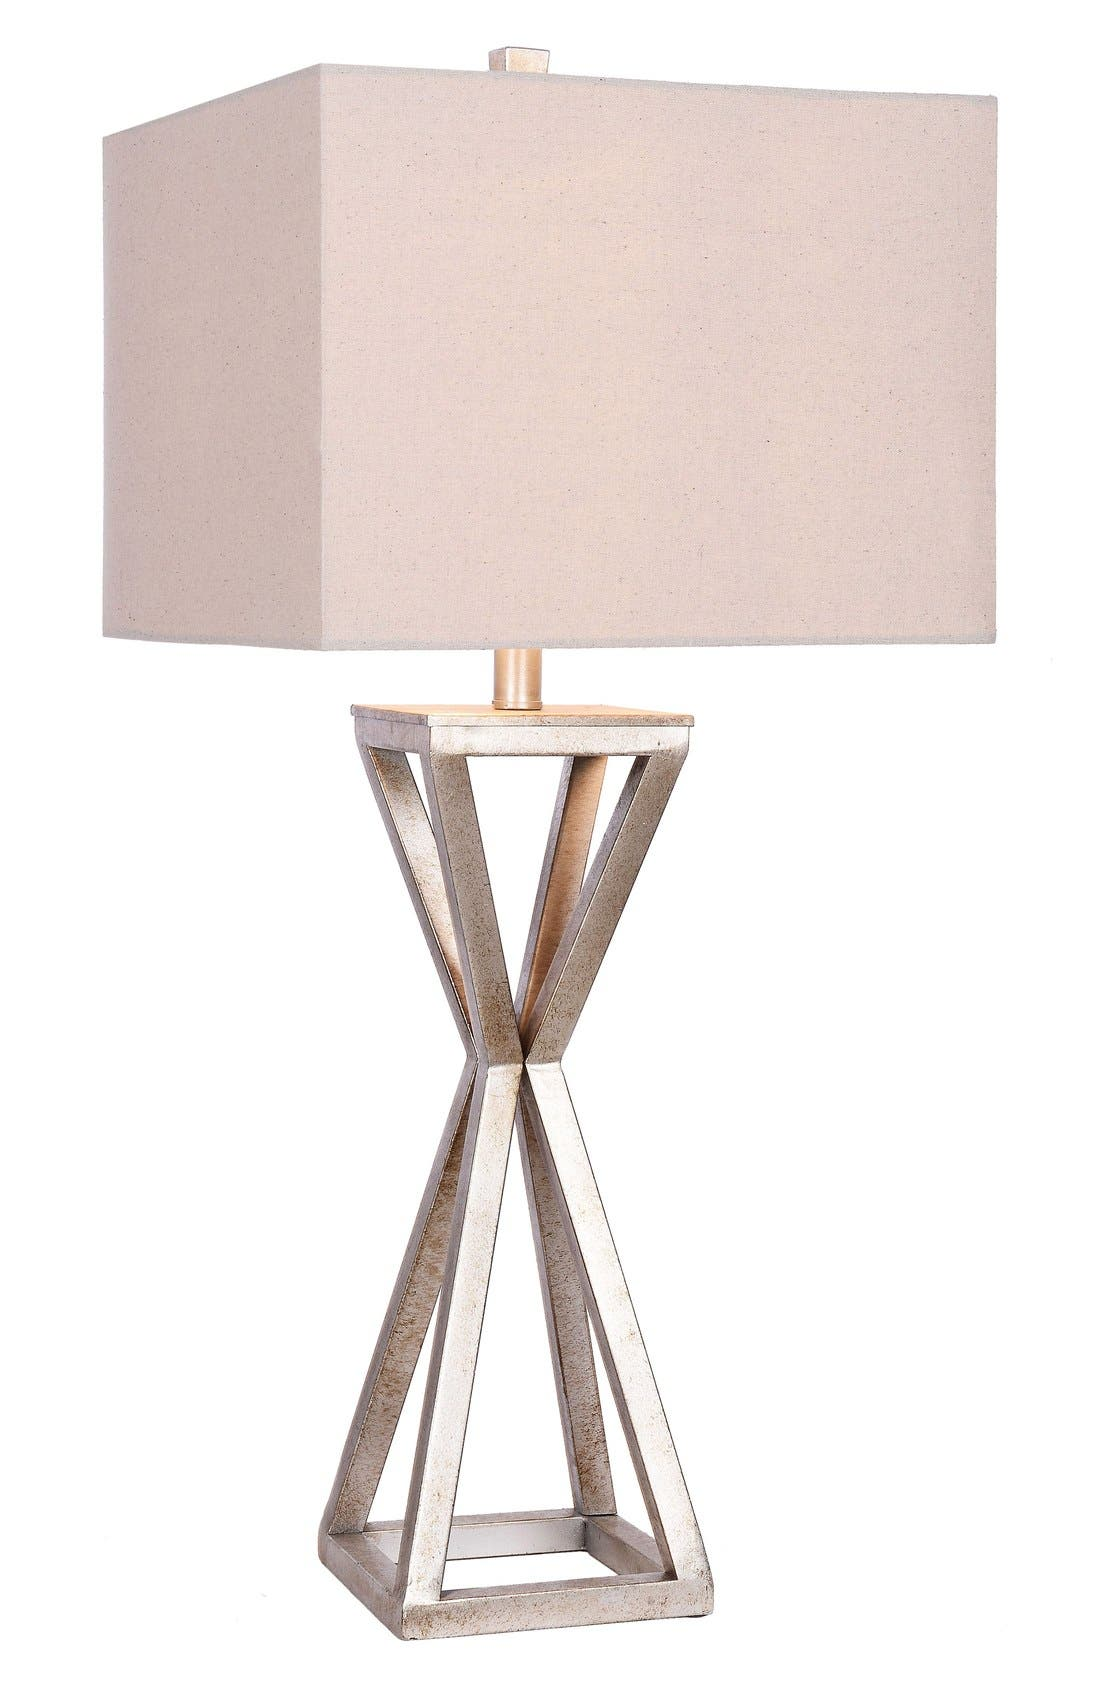 JAlexander Carrie Open Caged Metal Table Lamp,                             Main thumbnail 1, color,                             Silver